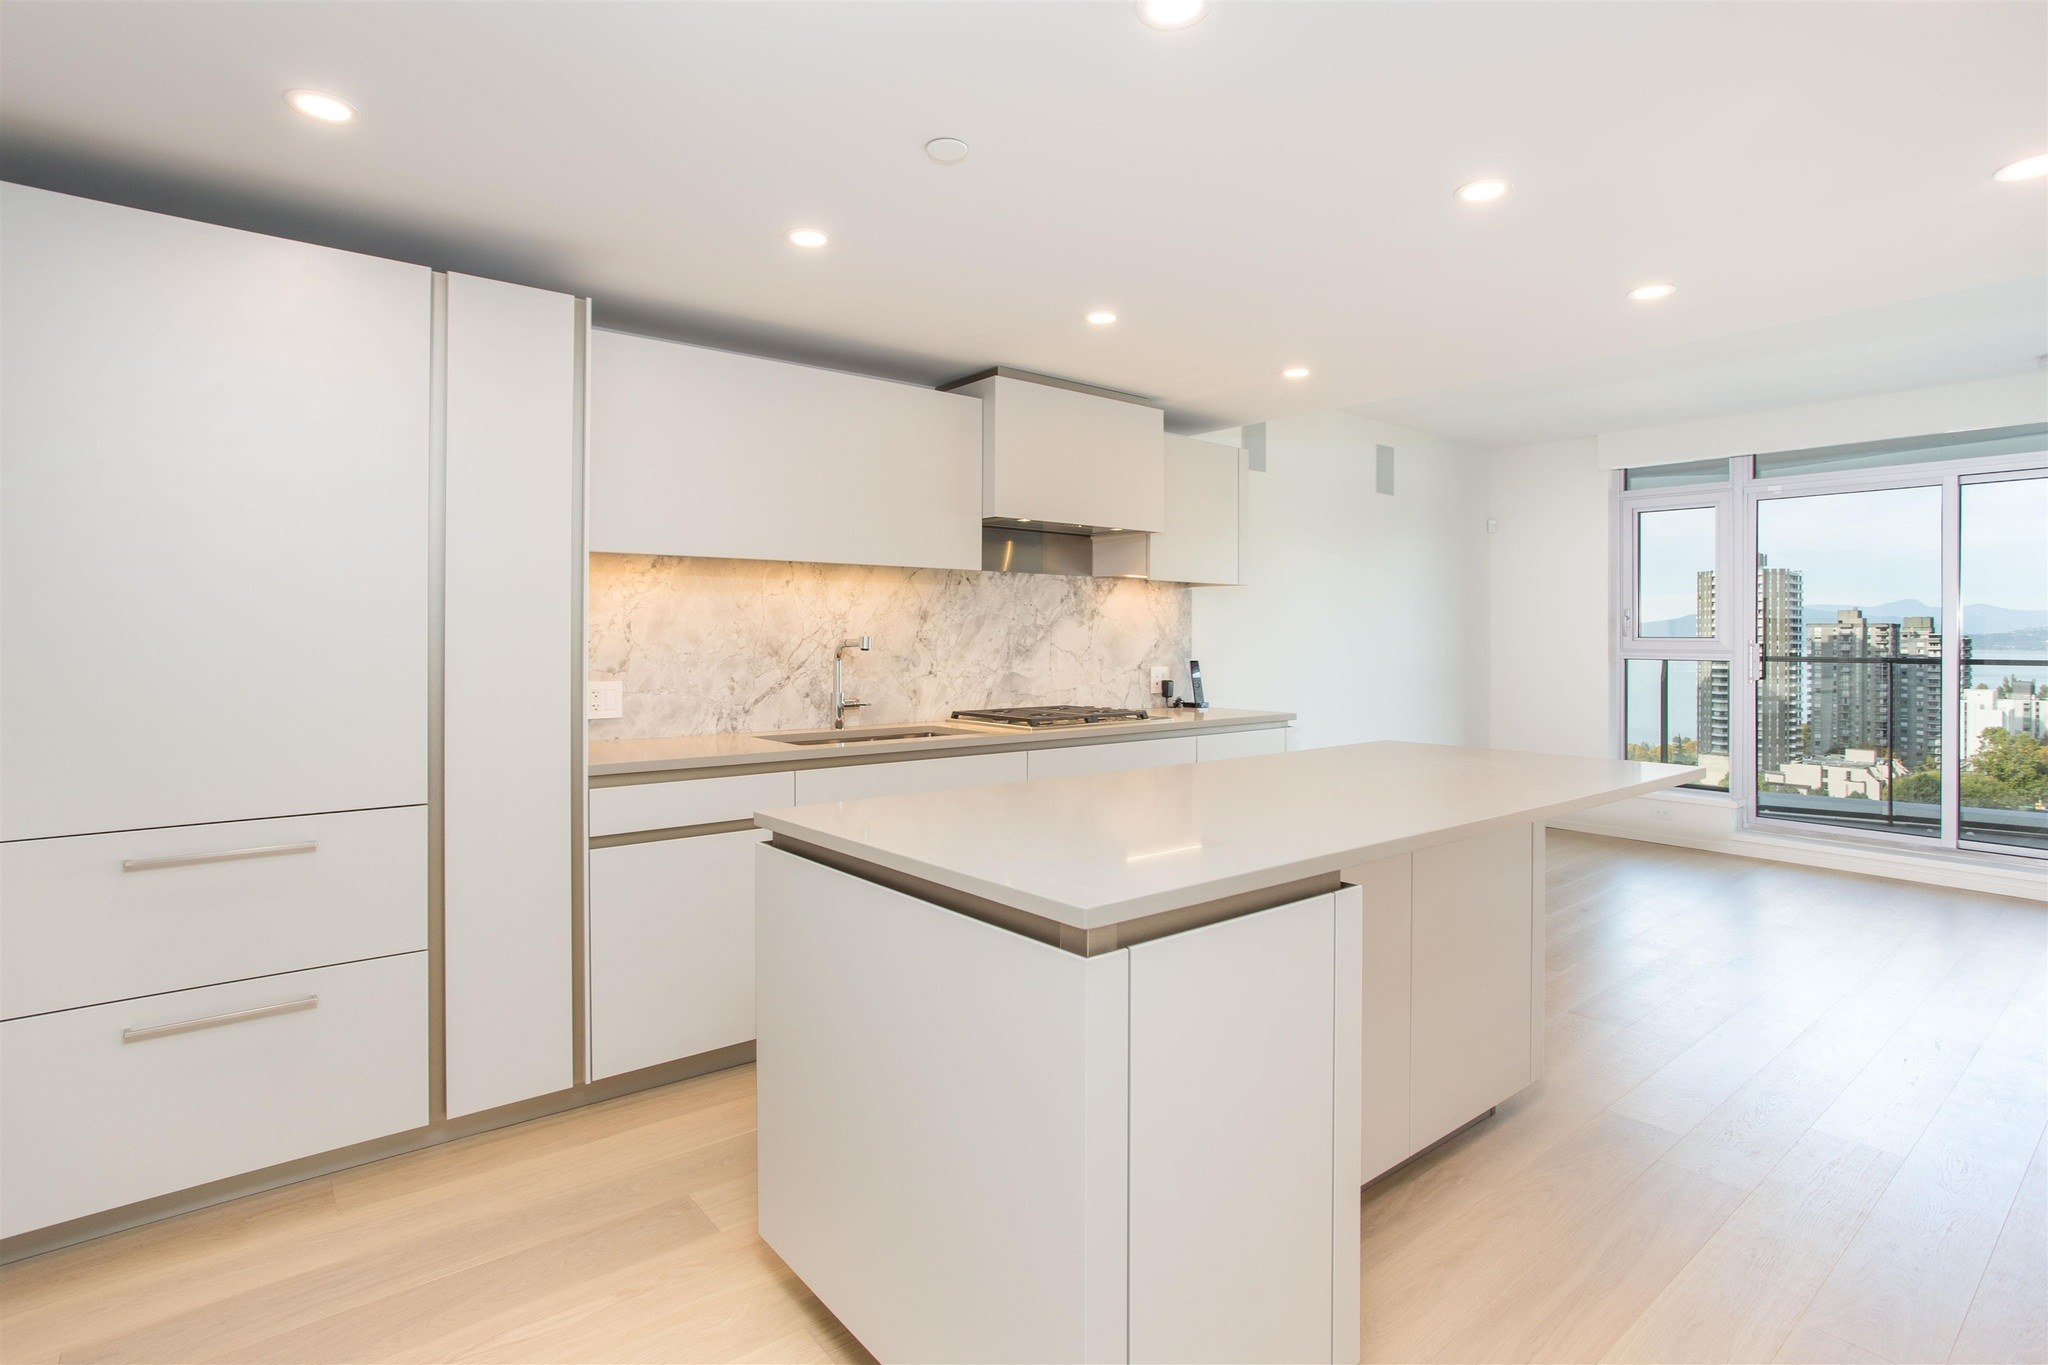 1-Bedroom House In Vancouver